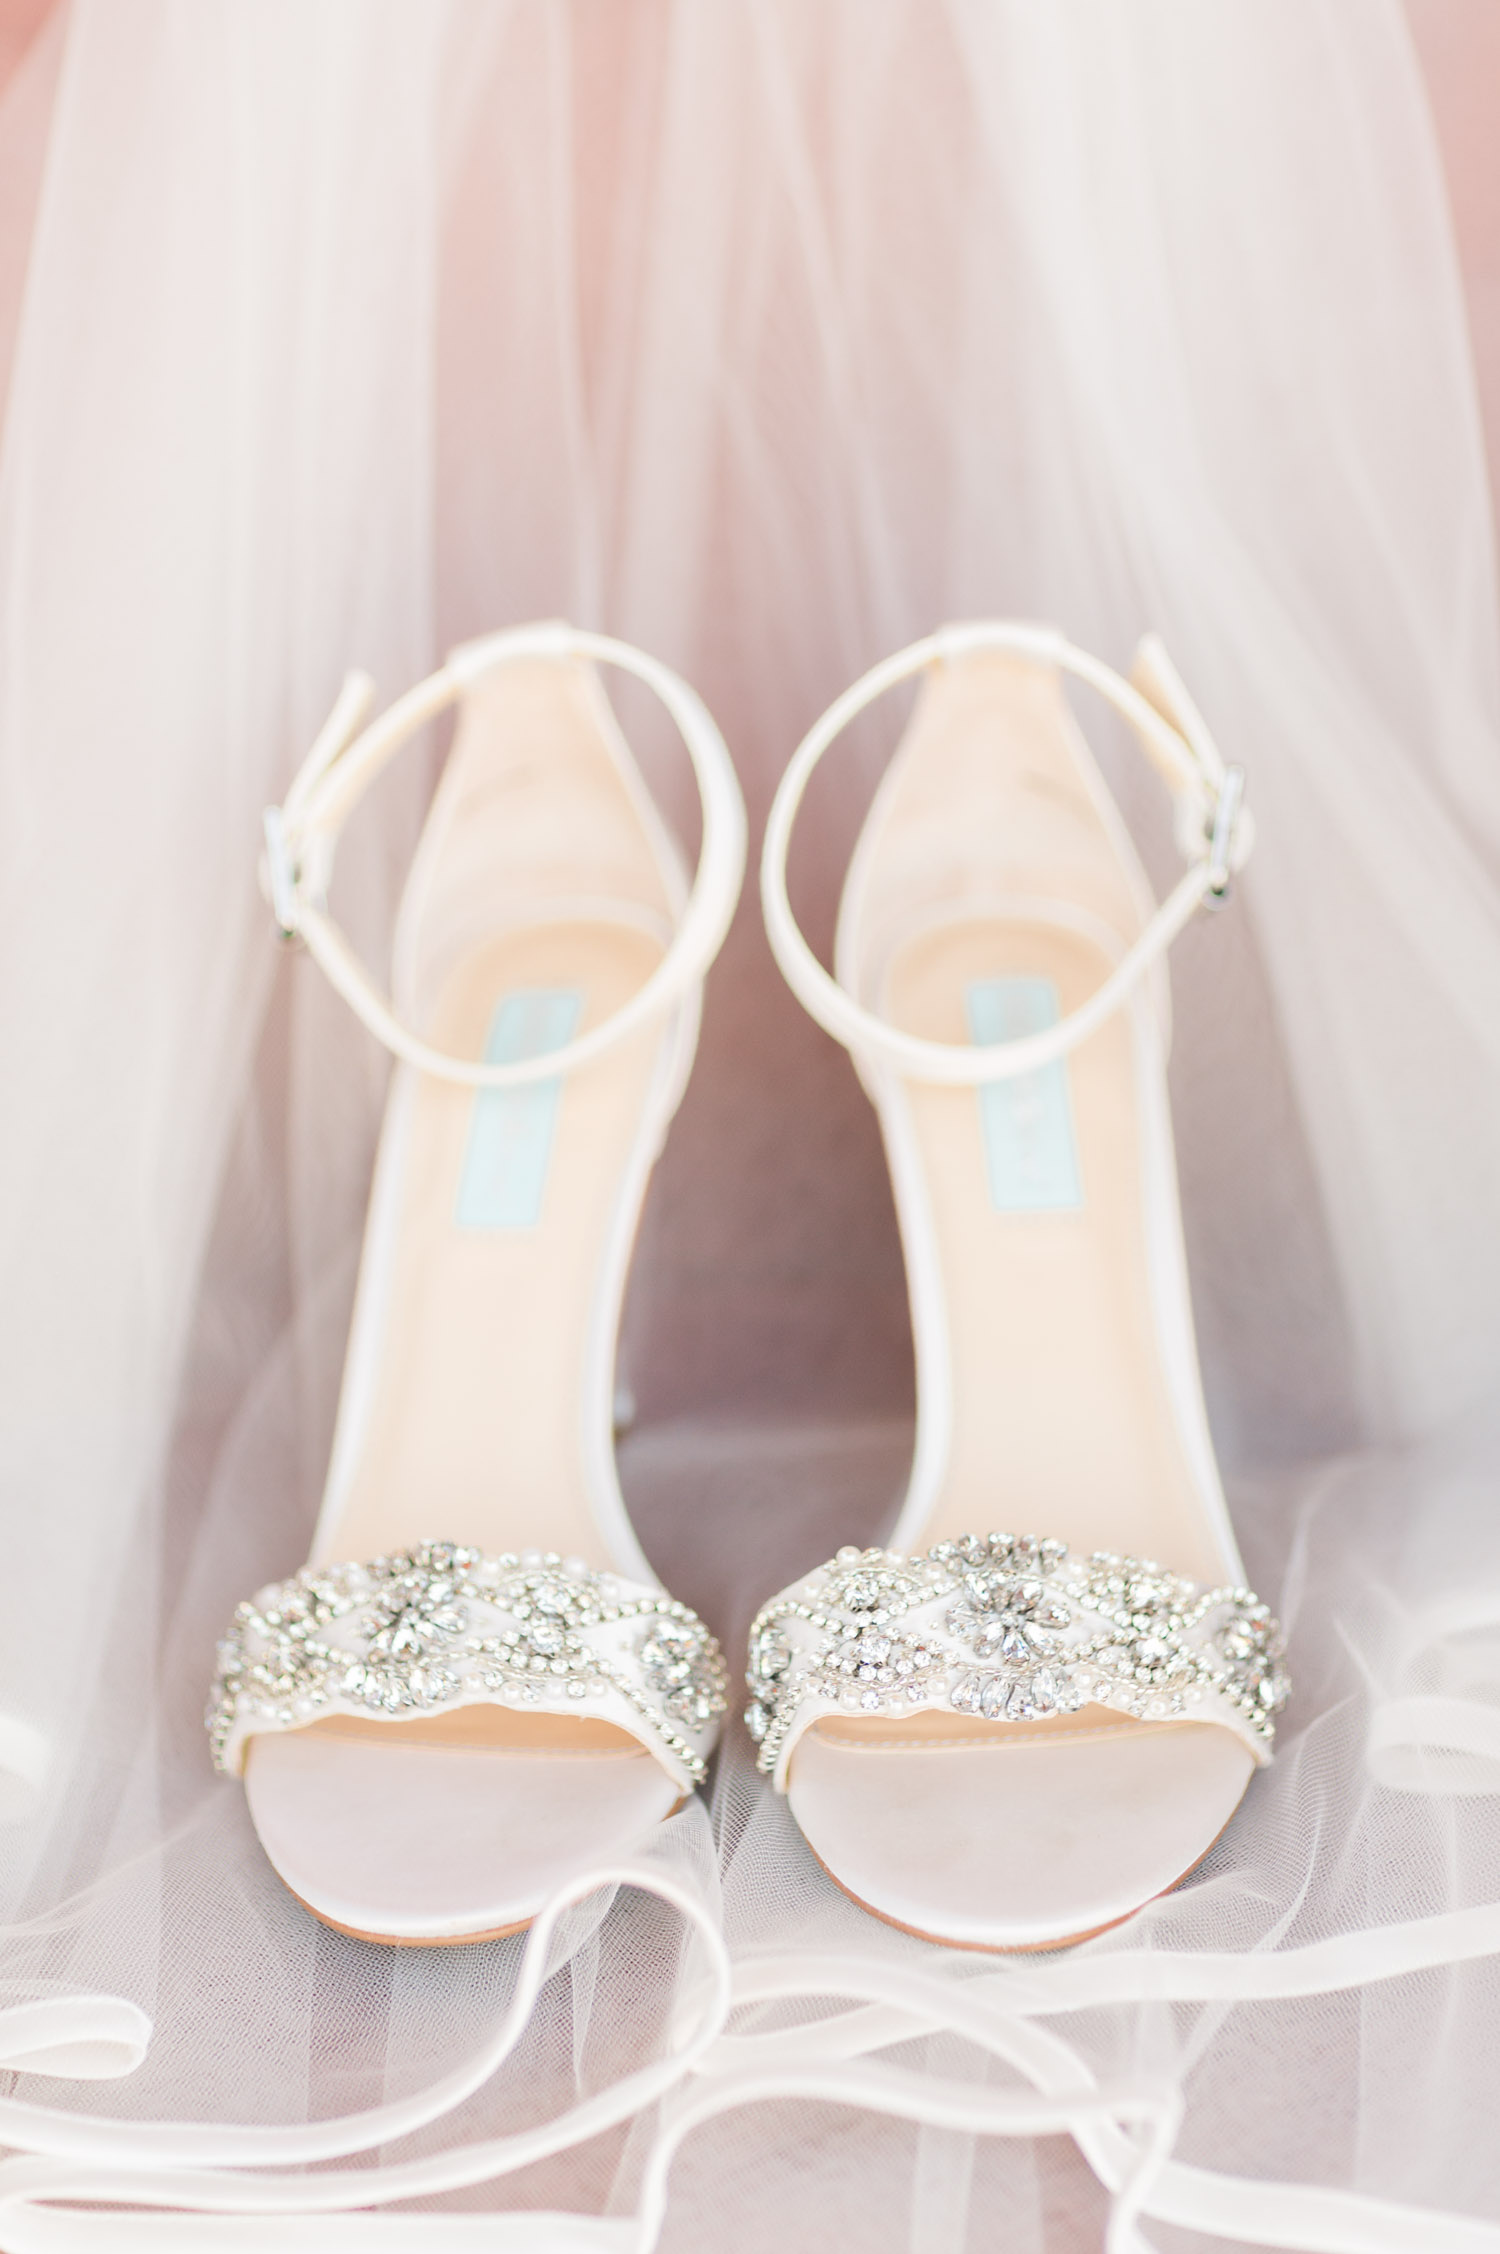 Beautiful Betsey Johnson wedding shoes with wedding veil